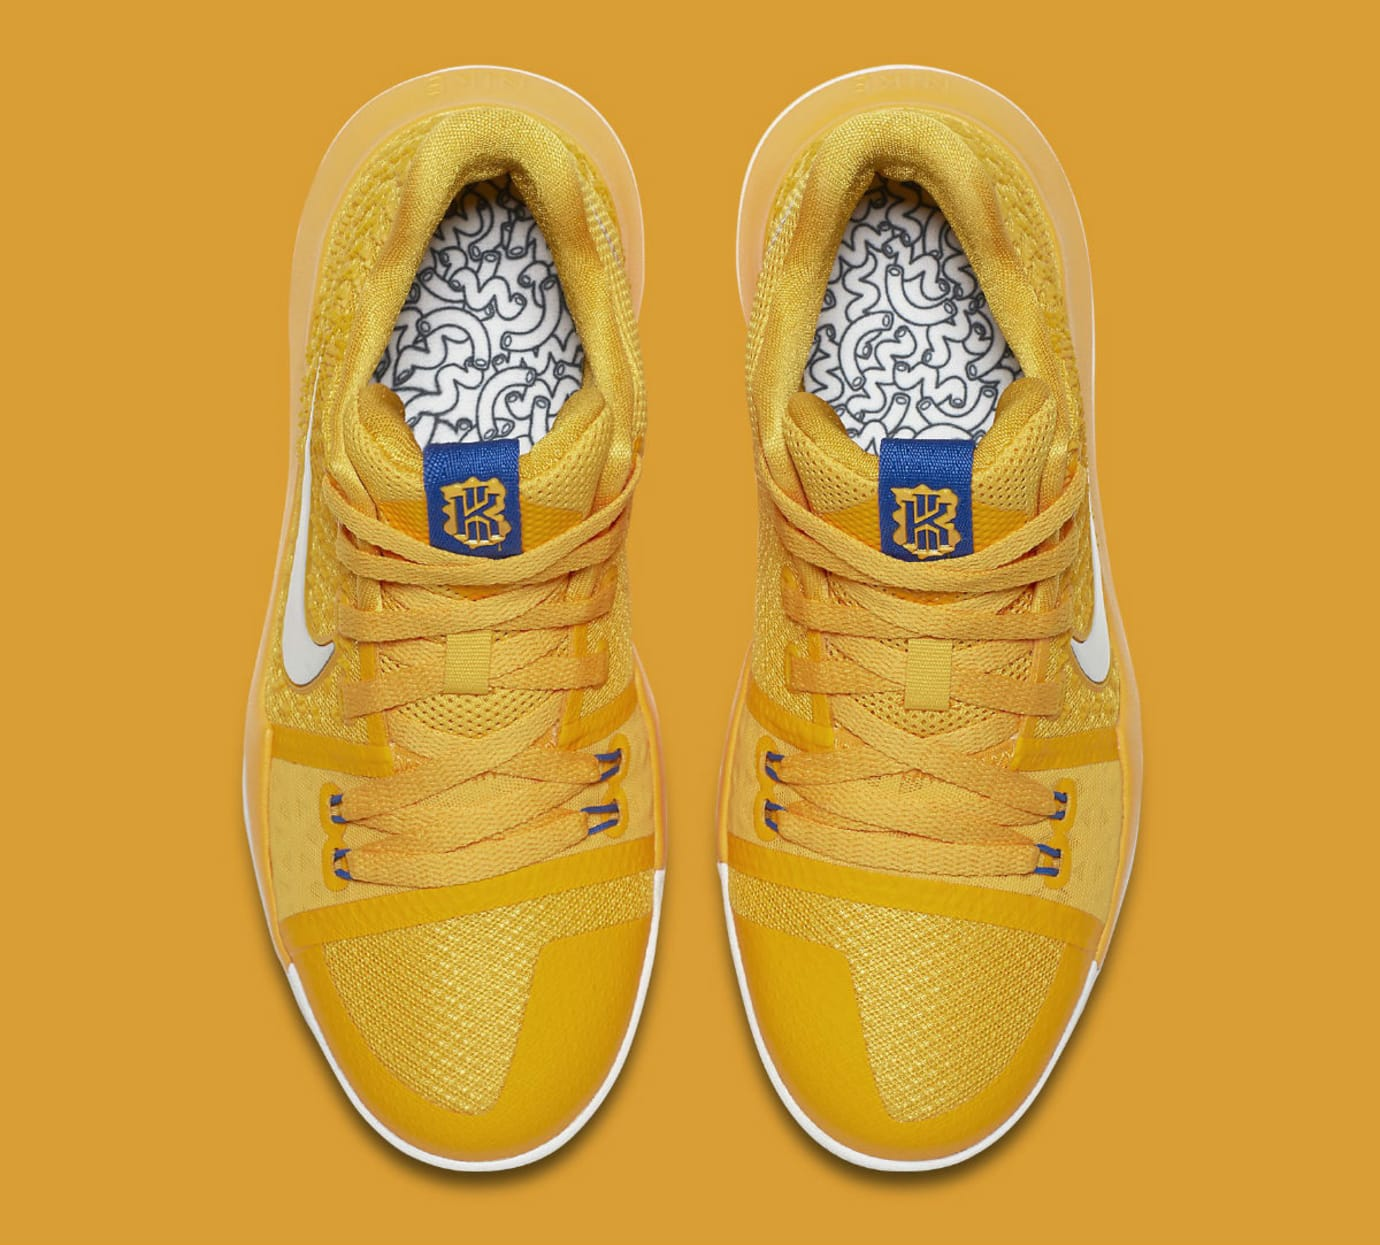 Nike Kyrie 3 Mac and Cheese Release Date 859466-791 | Sole